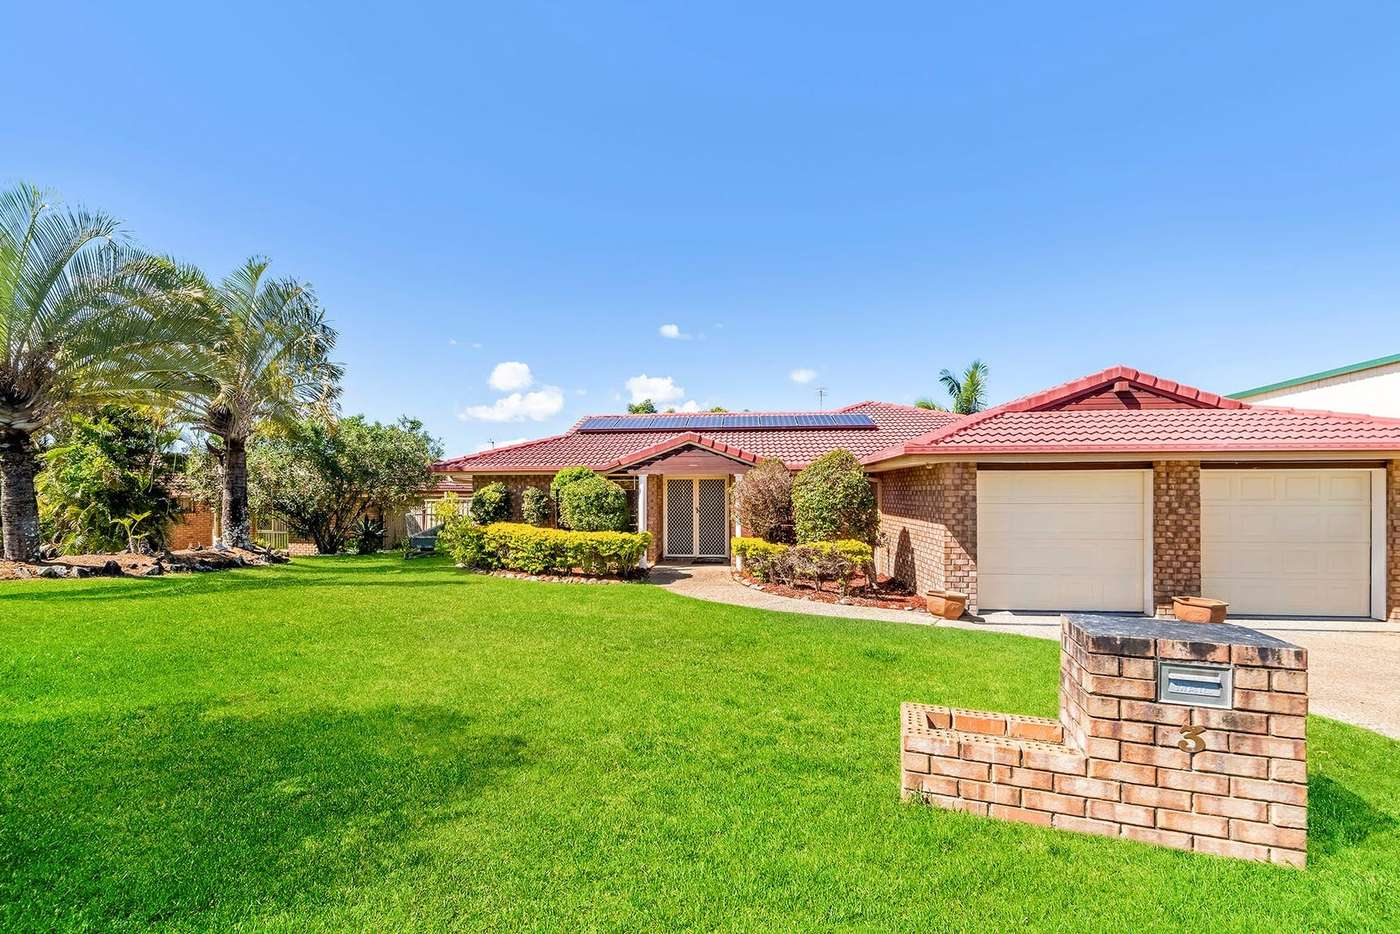 Main view of Homely house listing, 3 Outrigger Drive, Robina QLD 4226